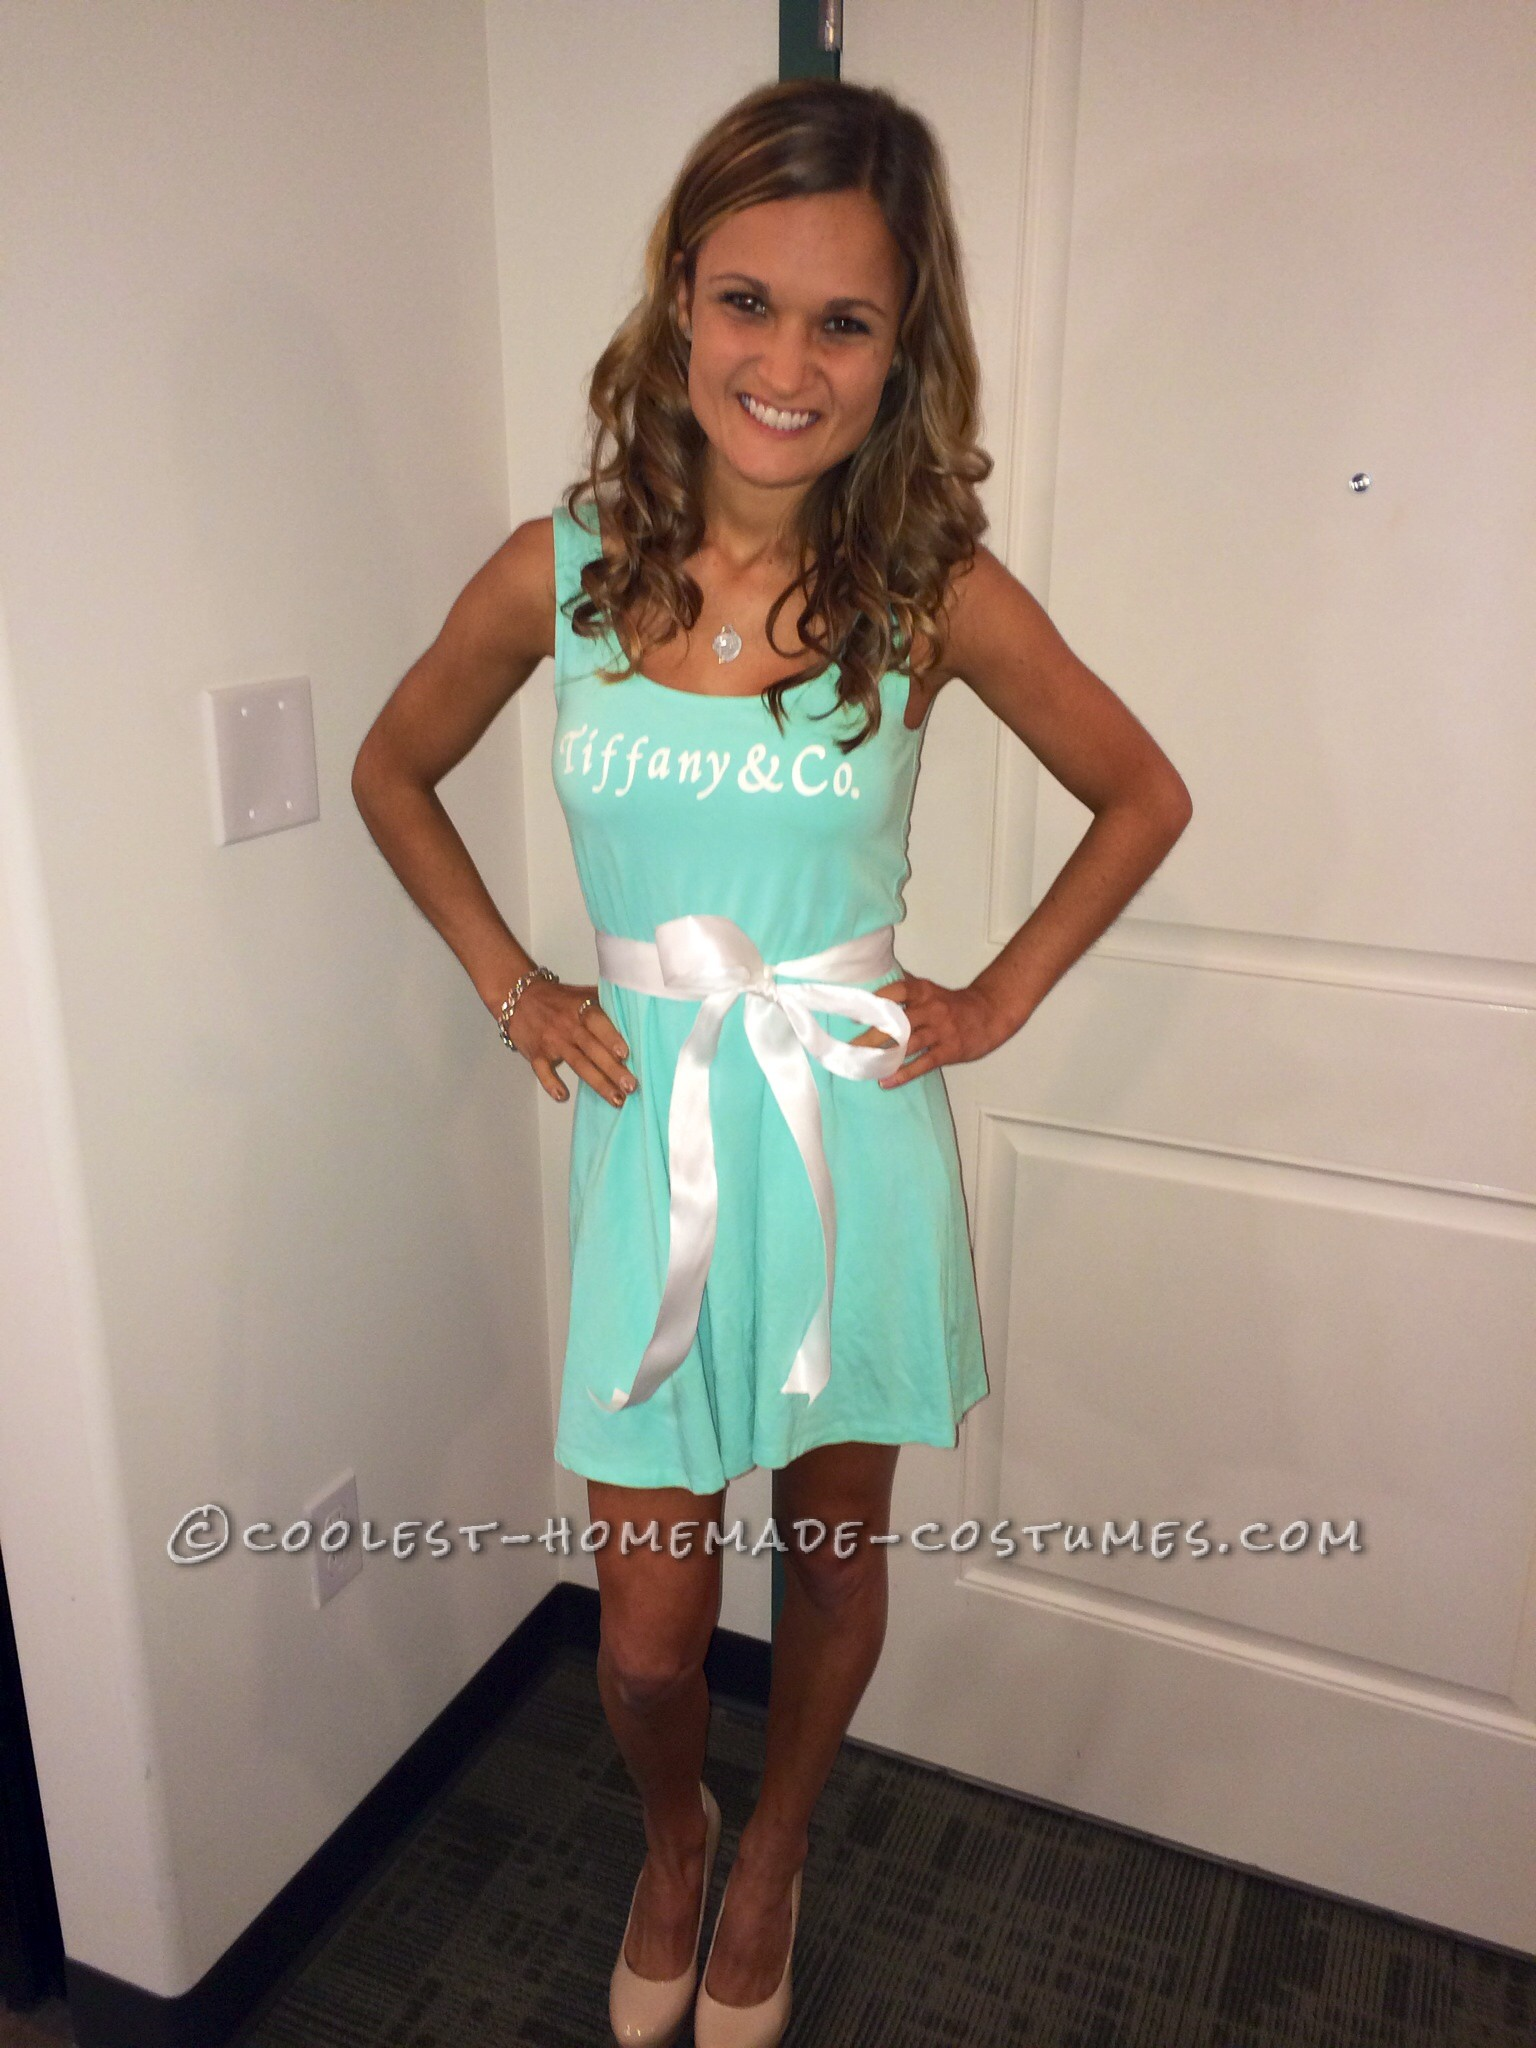 cutest tiffany co woman s costume